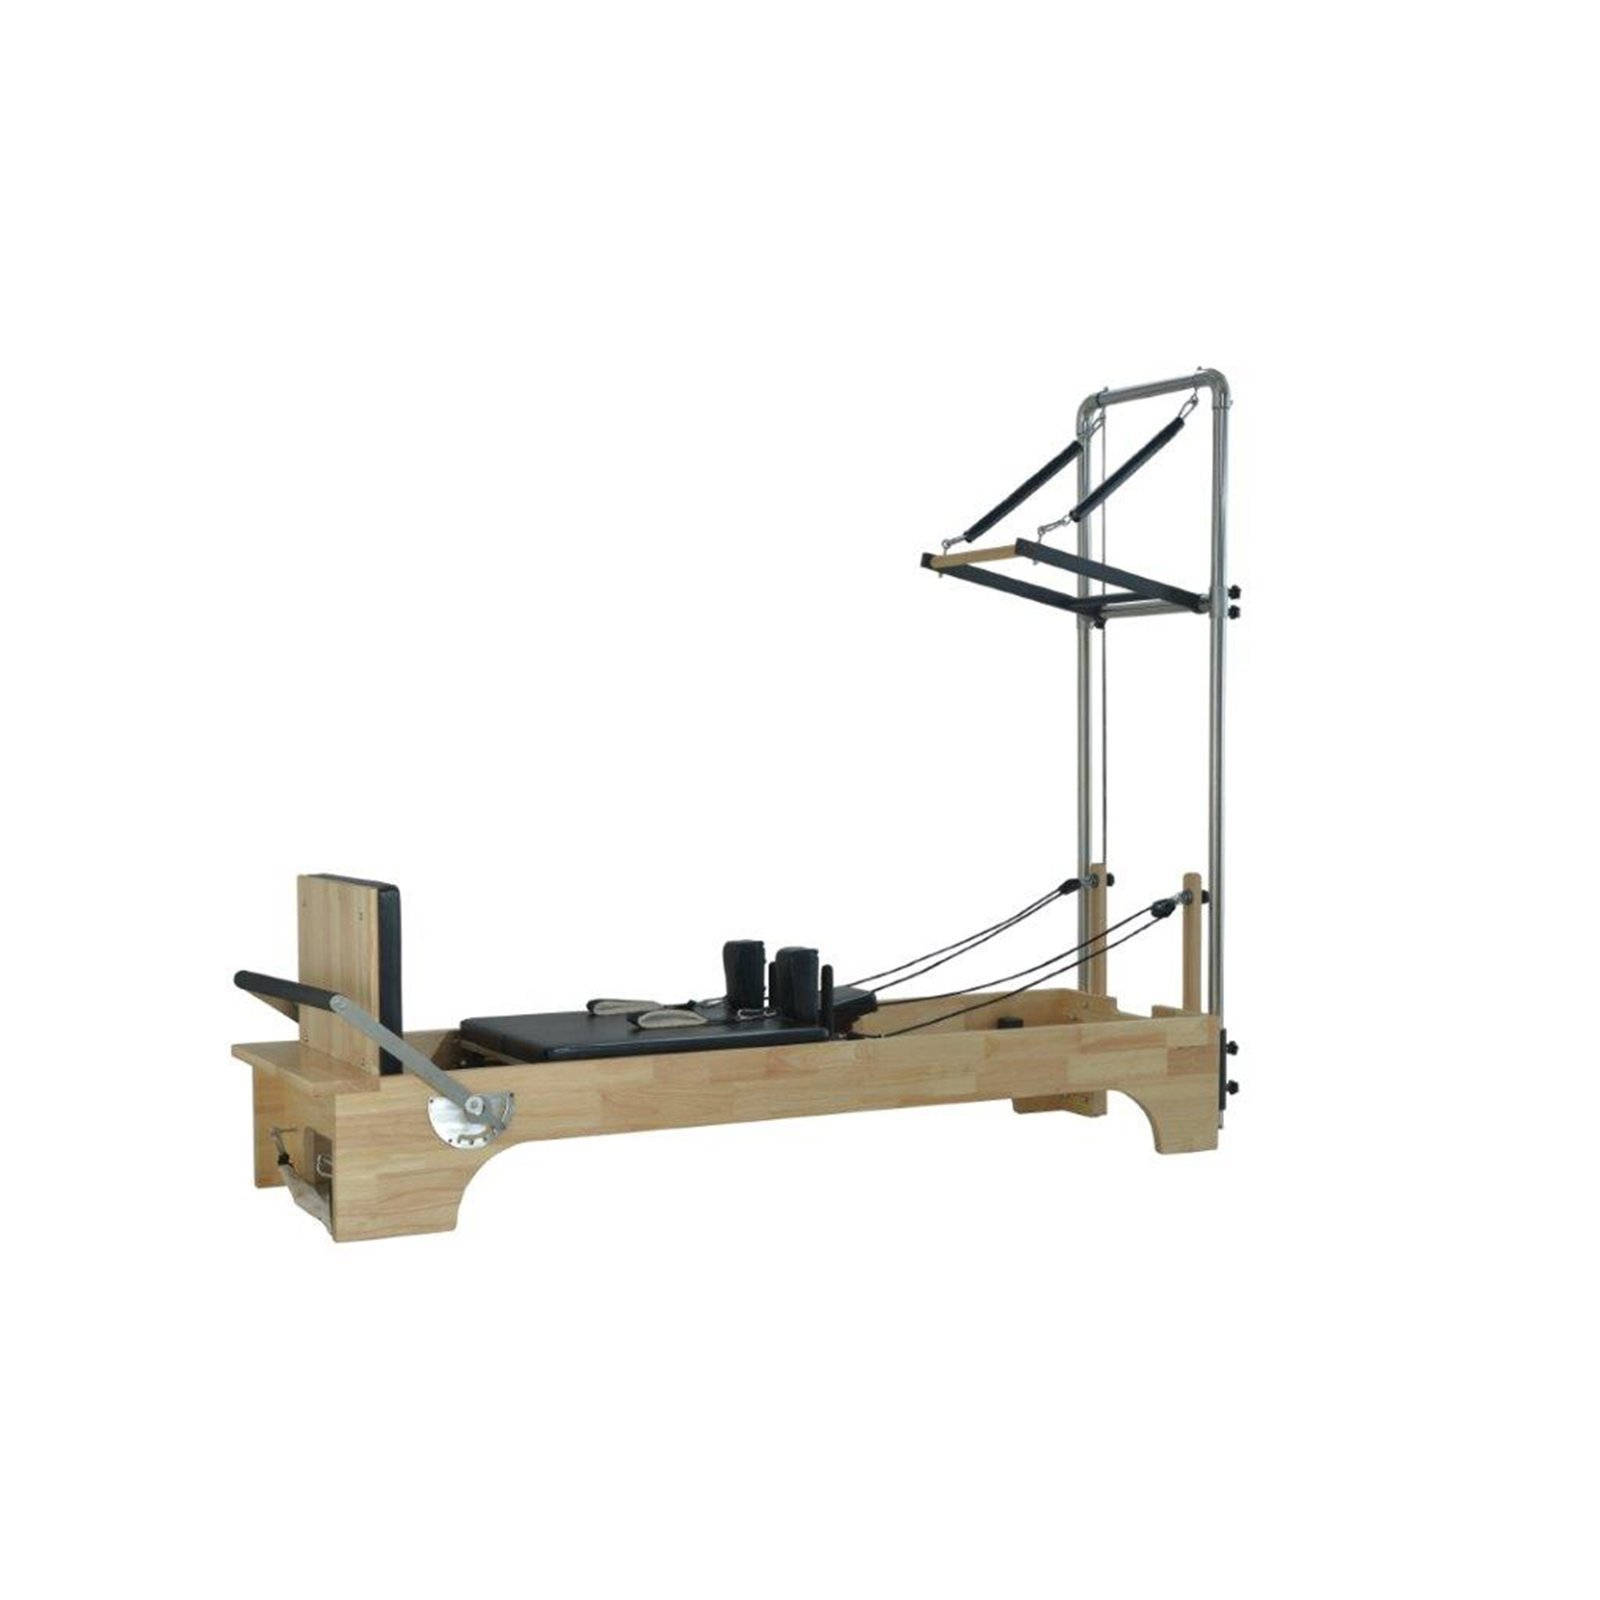 Refurbished Pilates Reformer with Half Trapeze Table